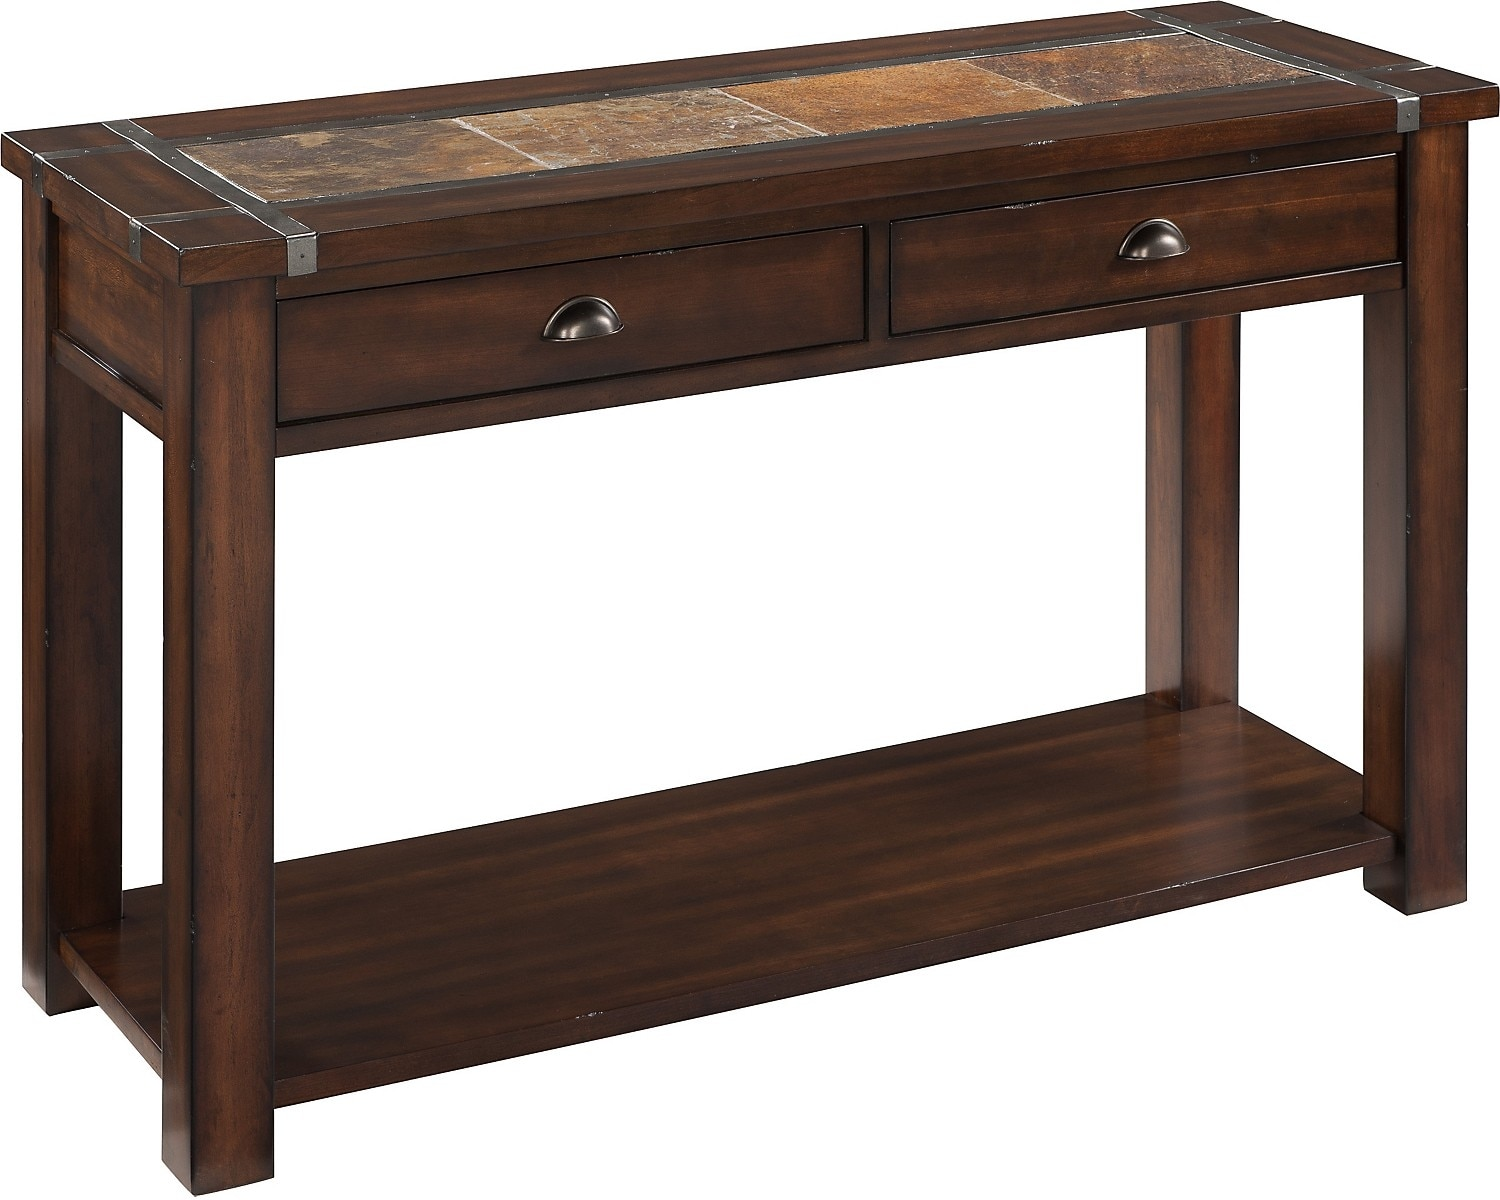 roanoke sofa table  the brick - hover to zoom